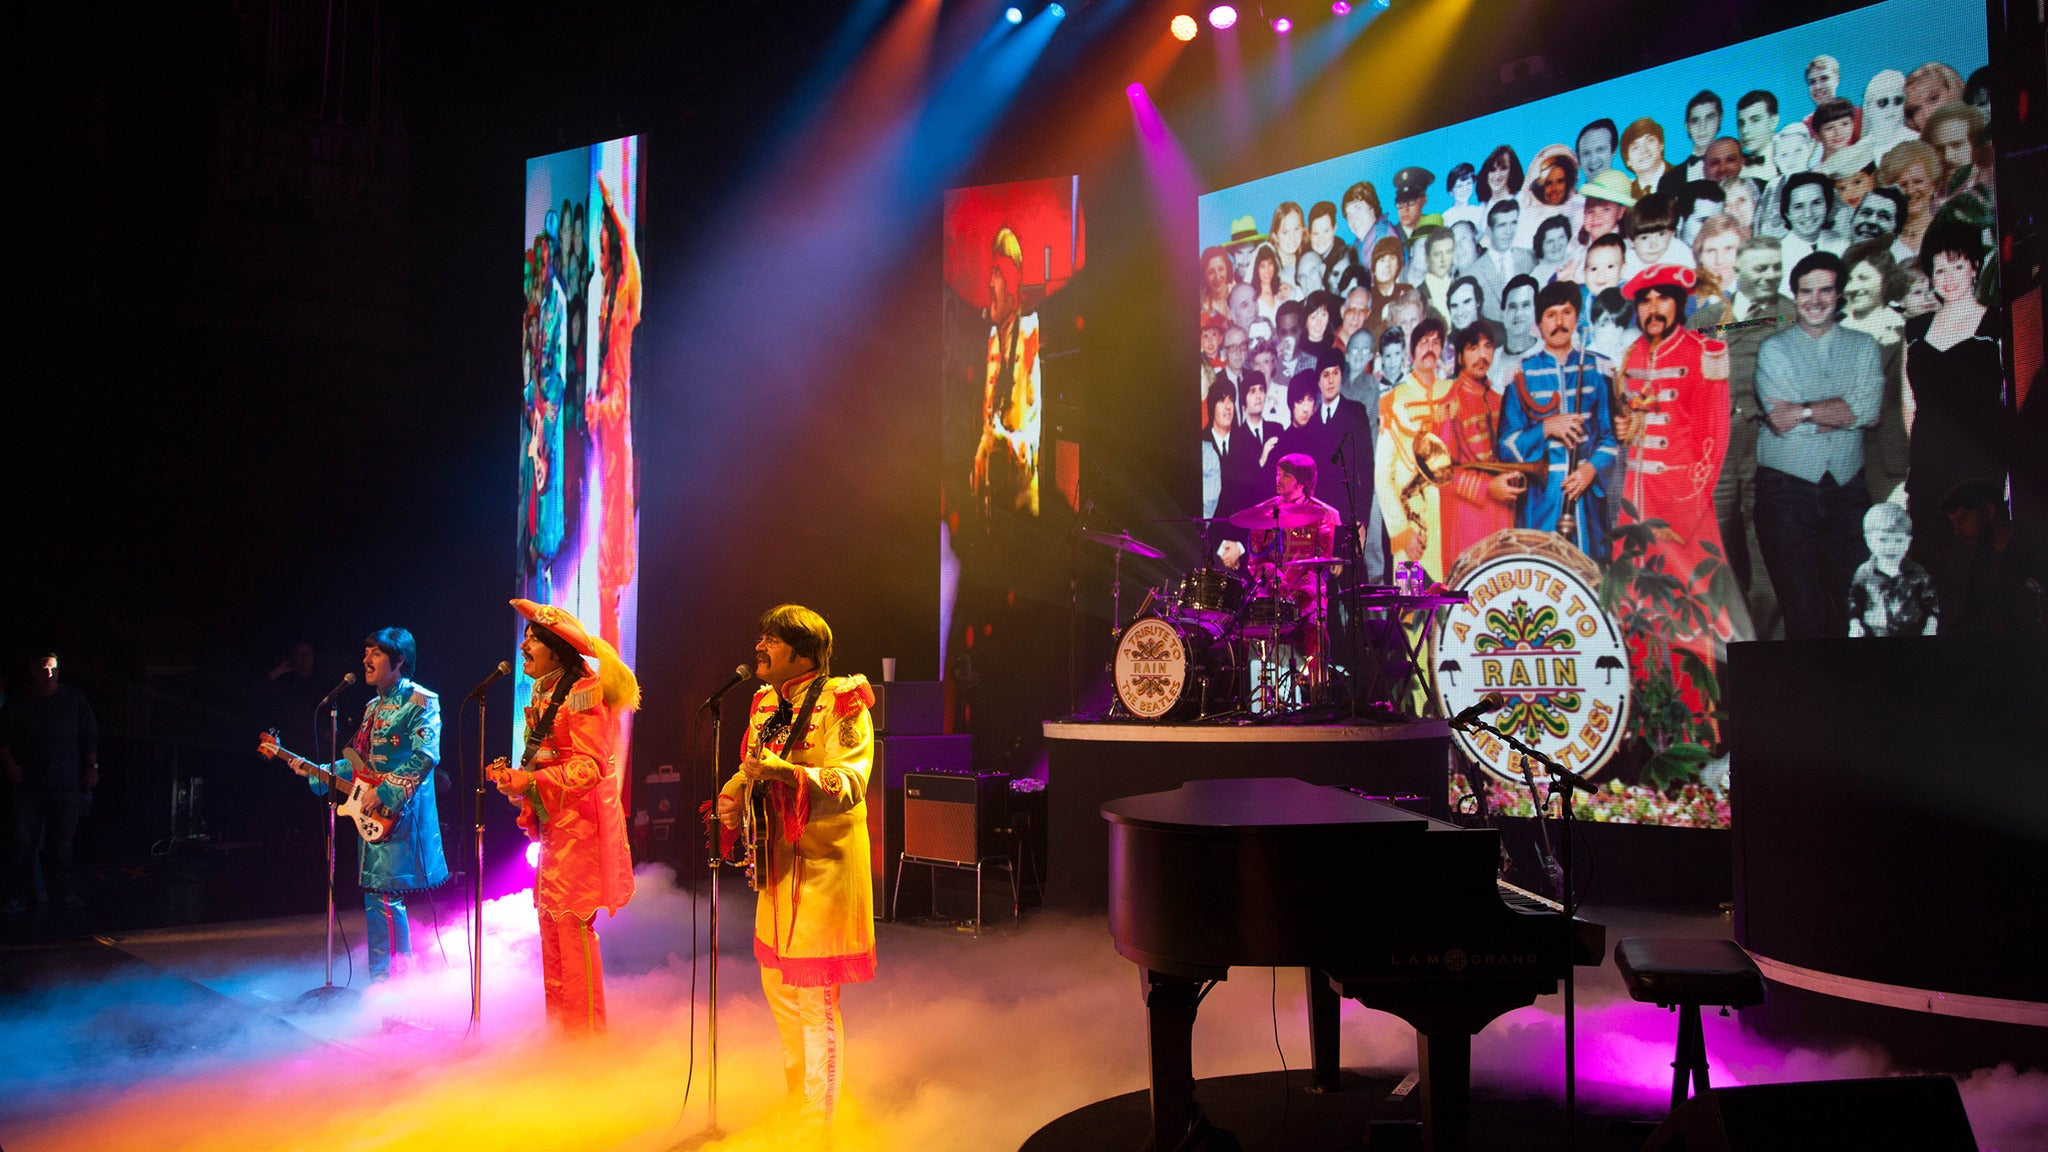 Rain: a Tribute To the Beatles at Adler Theatre